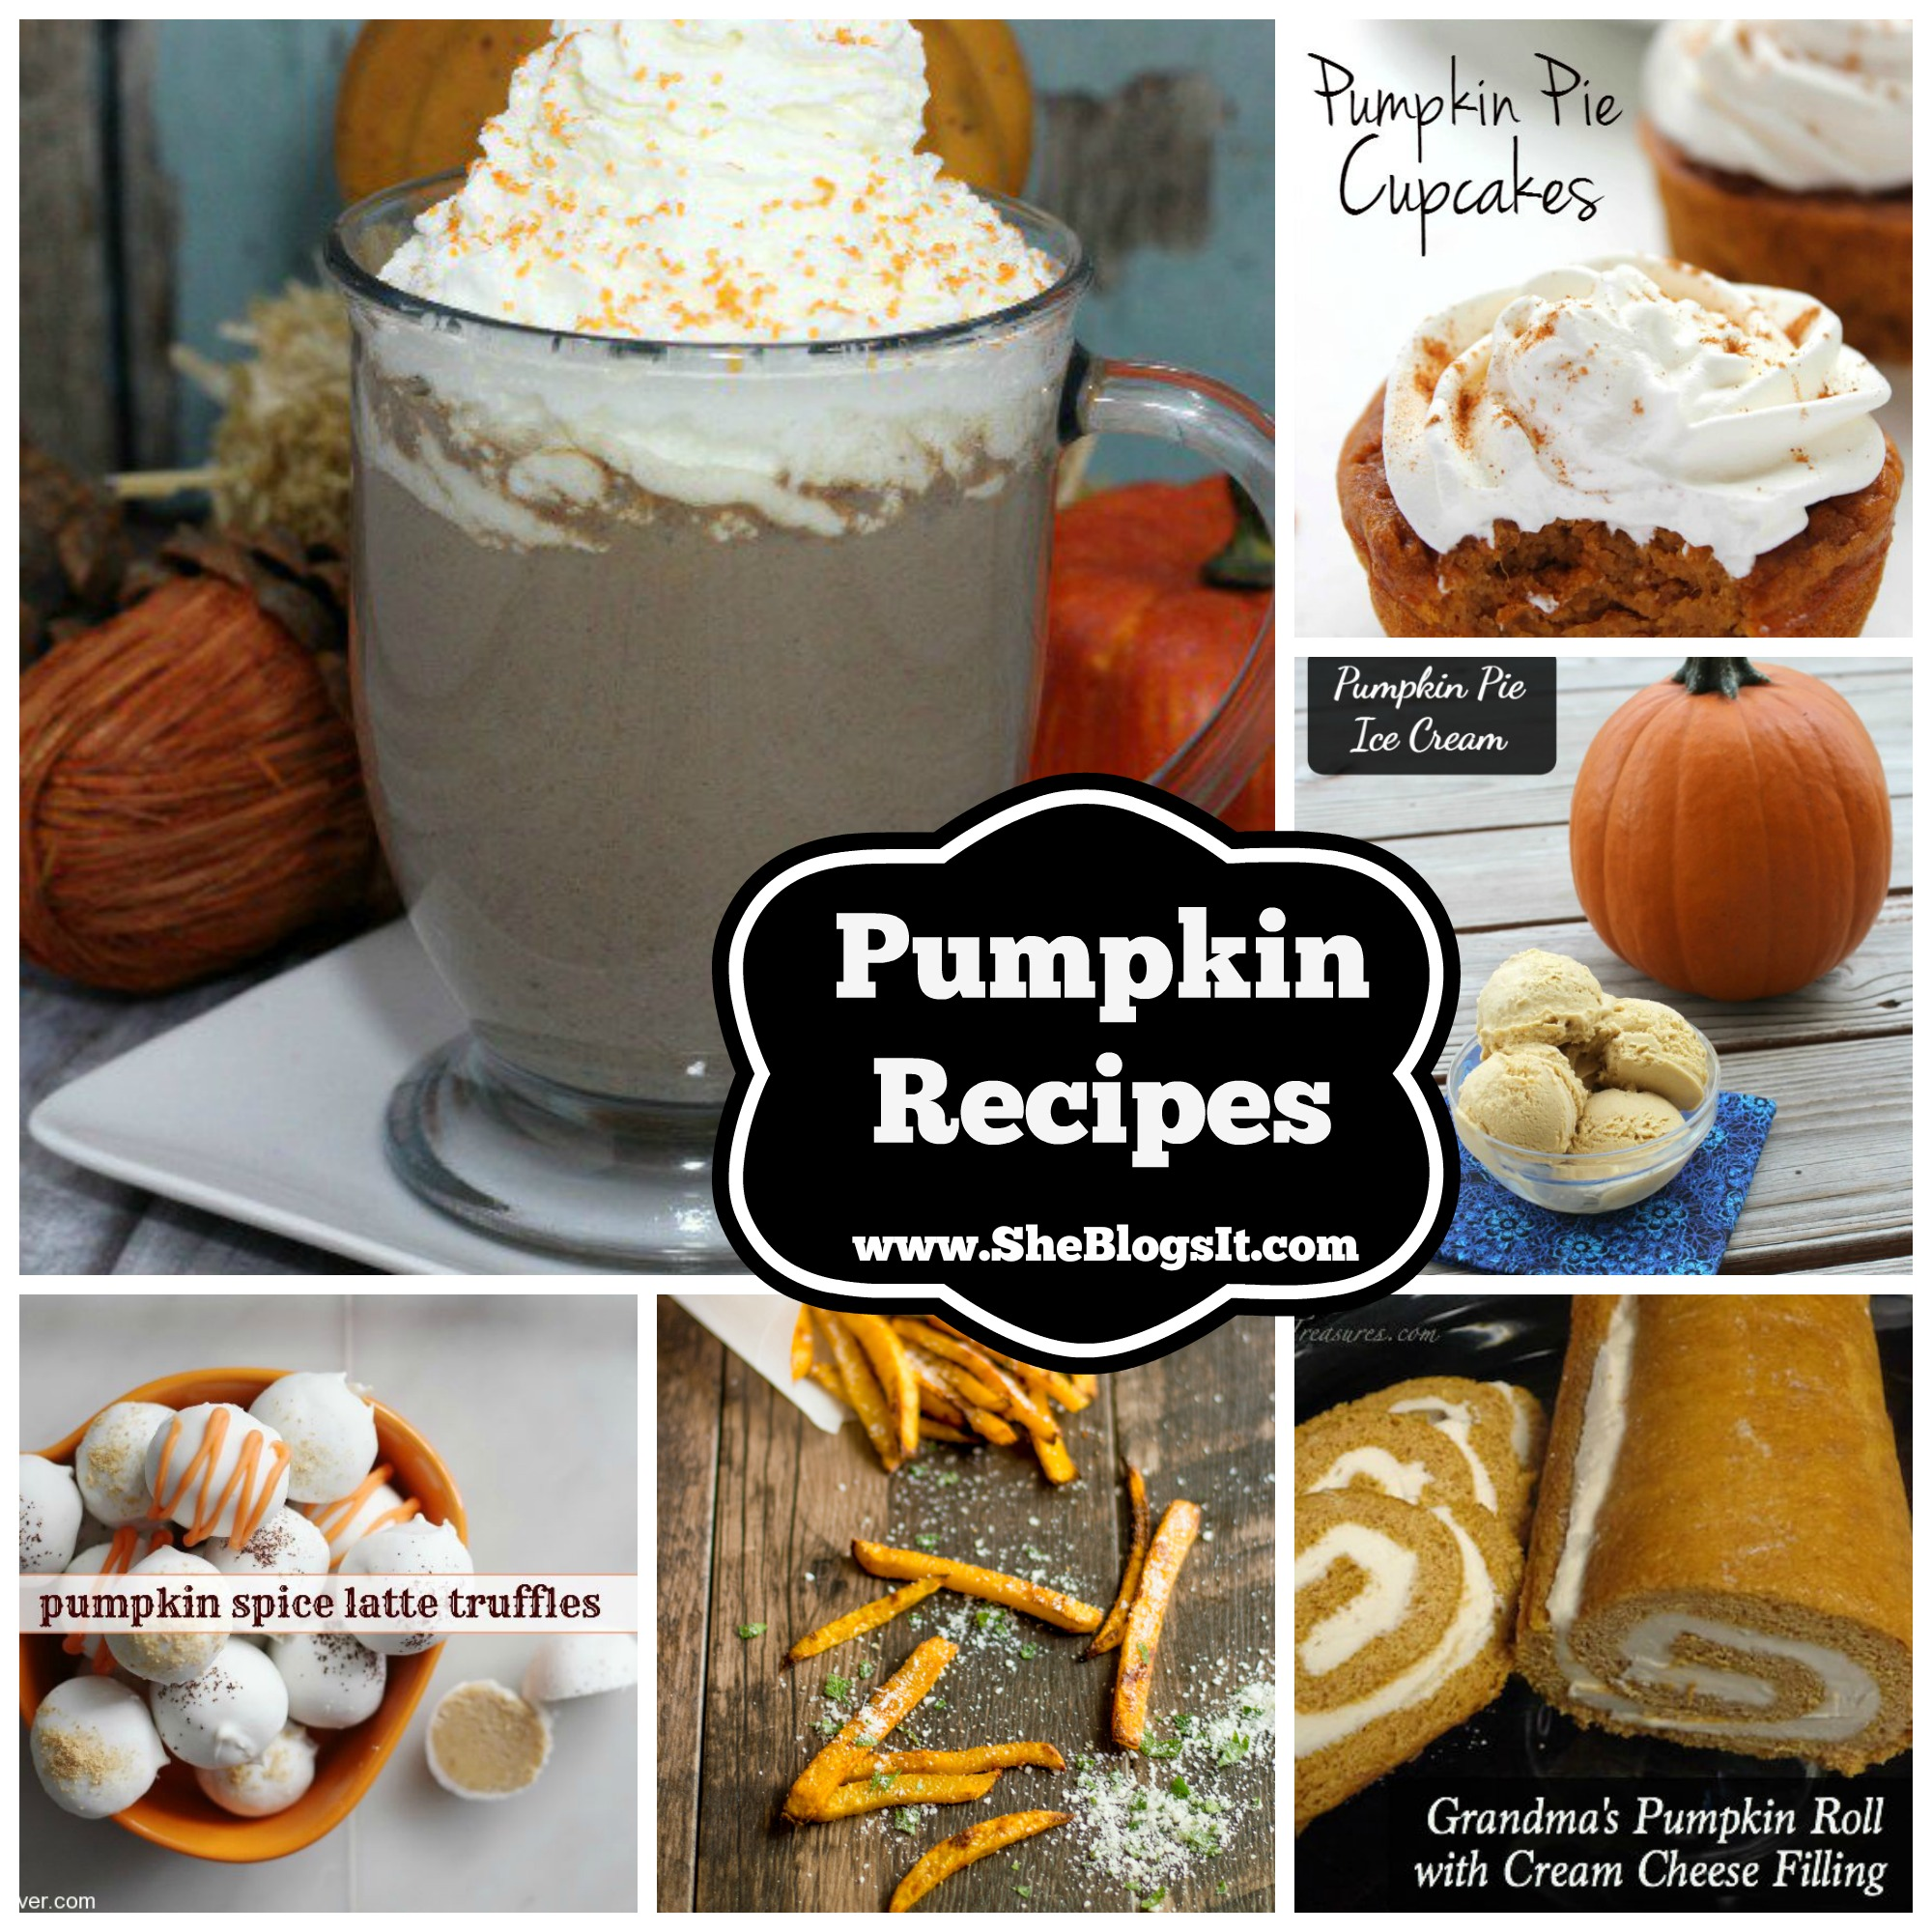 Pumpkin recipes- sheblogs